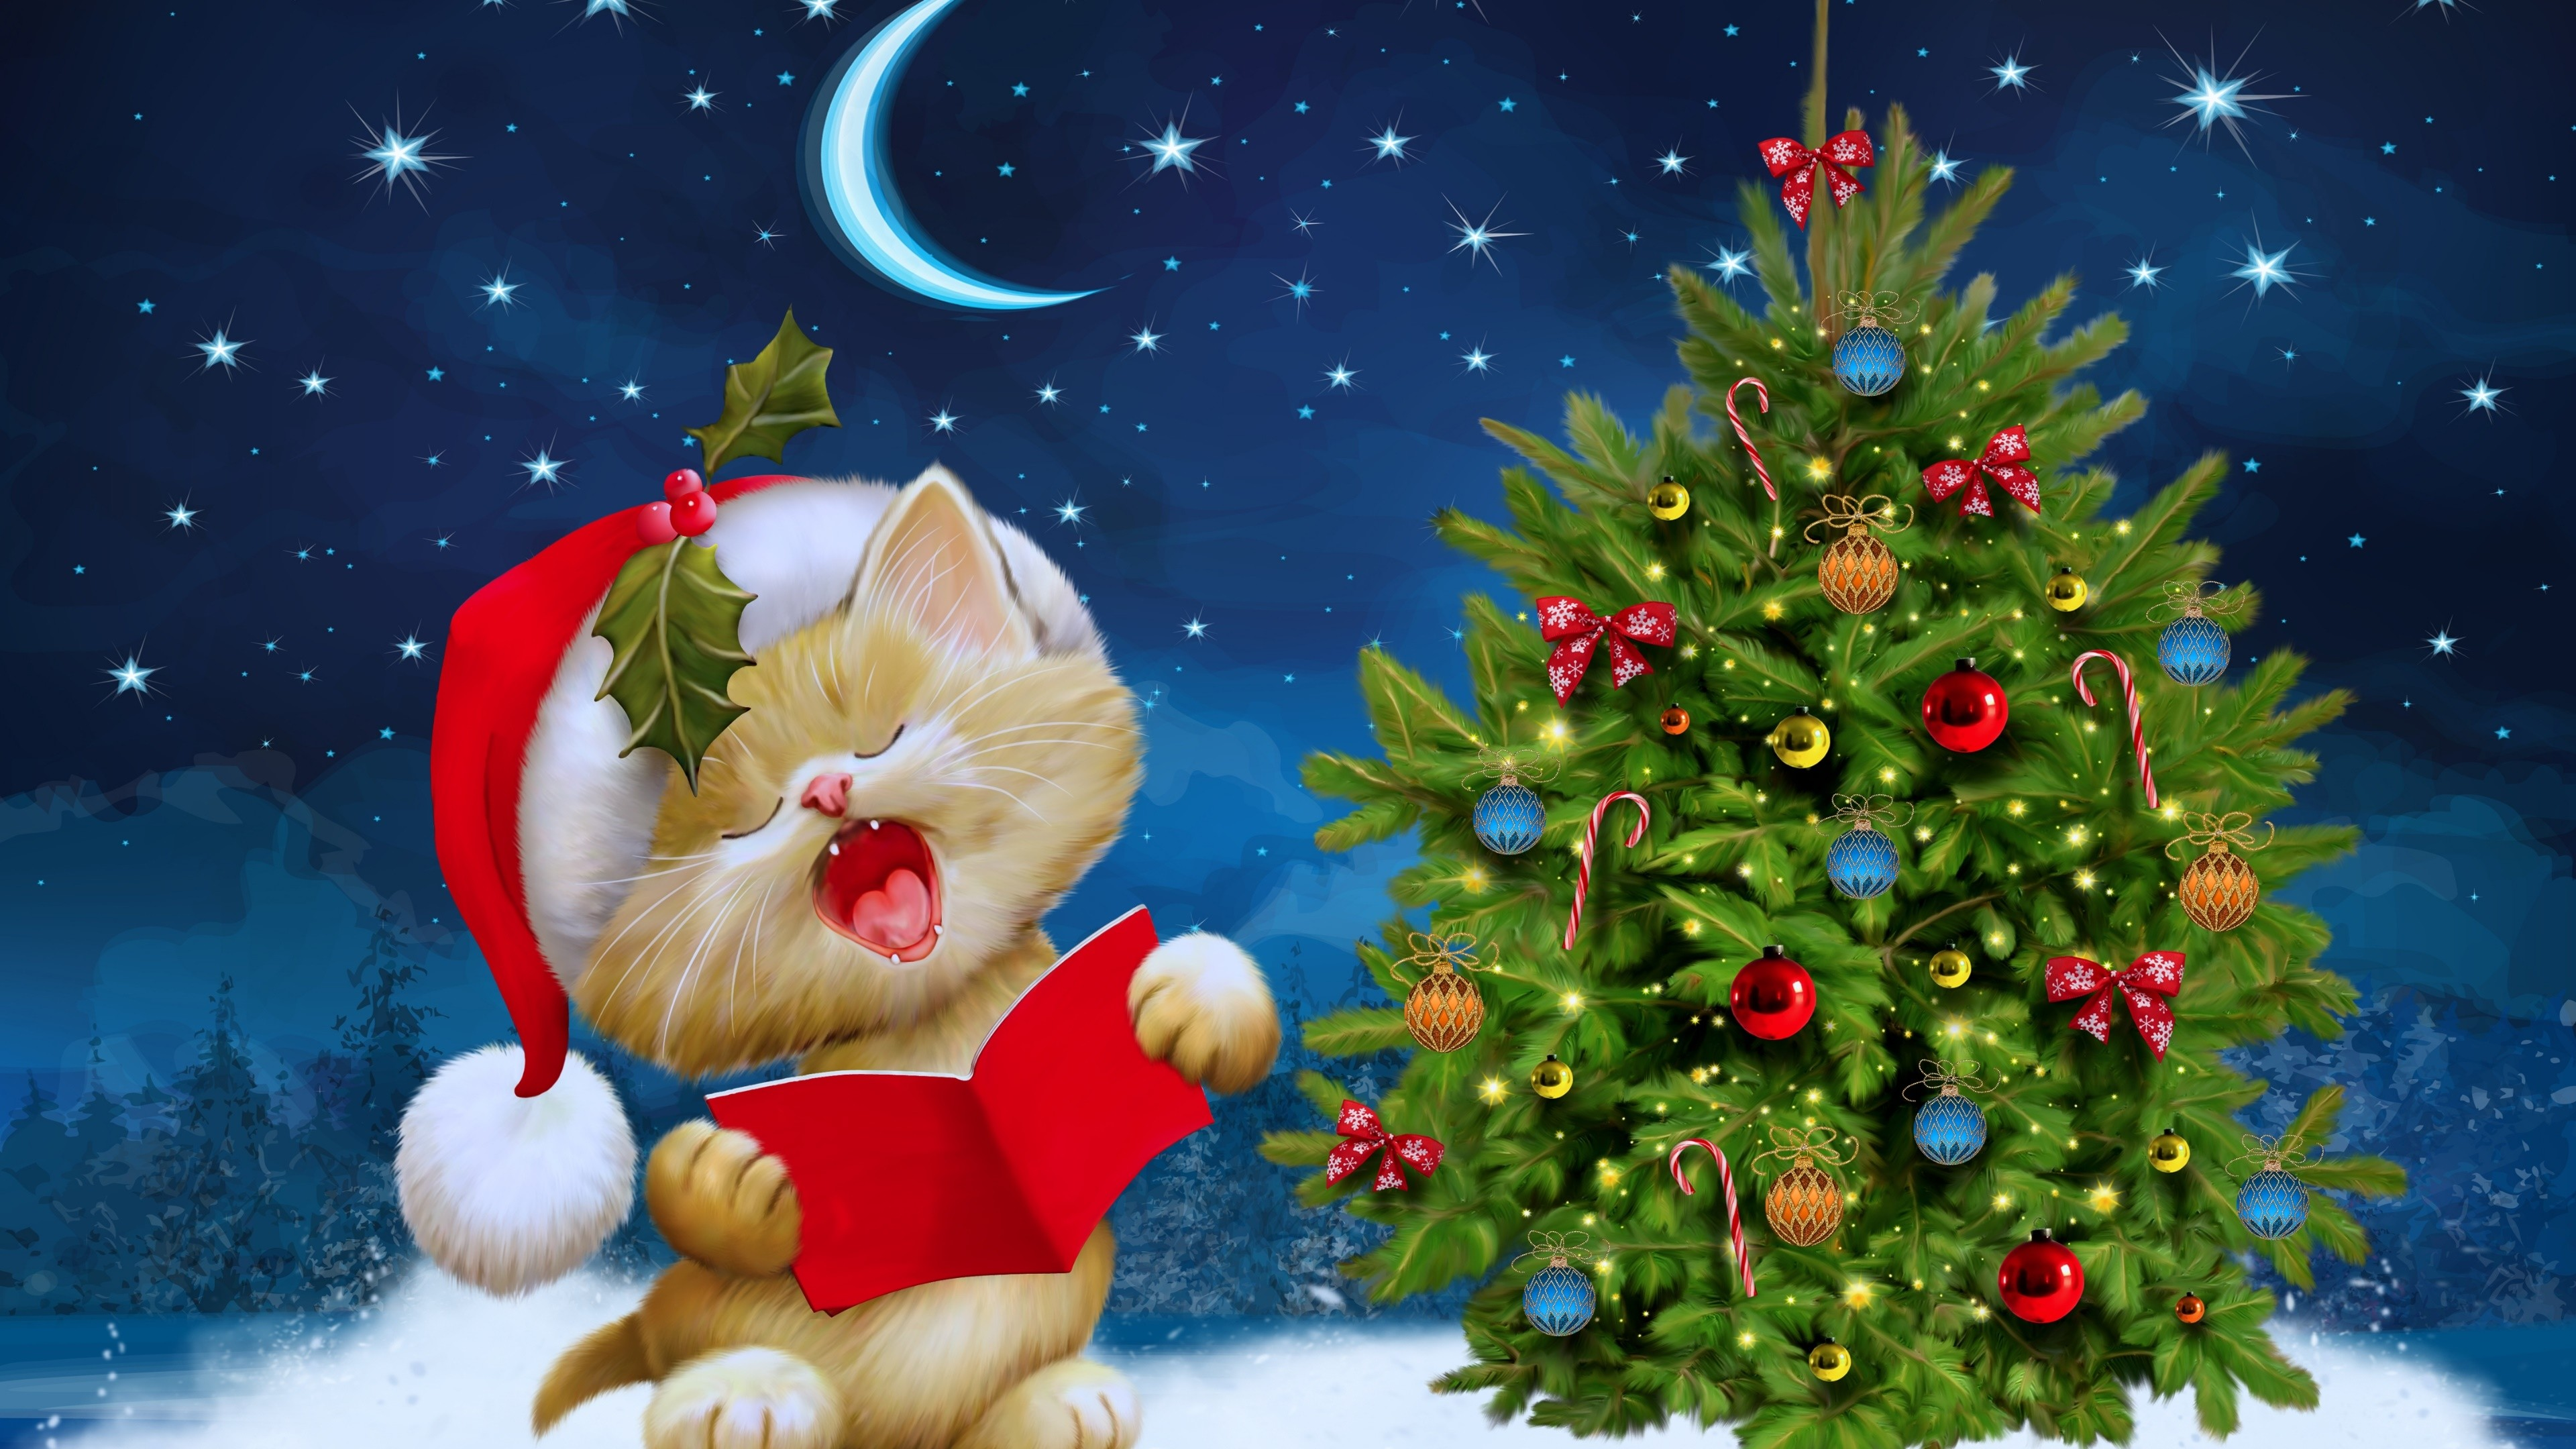 Hello Kitty Christmas Wallpaper  62  images  3840x2160 Awesome Hello Kitty Christmas Pictures   Hello Kitty Christmas  Wallpapers